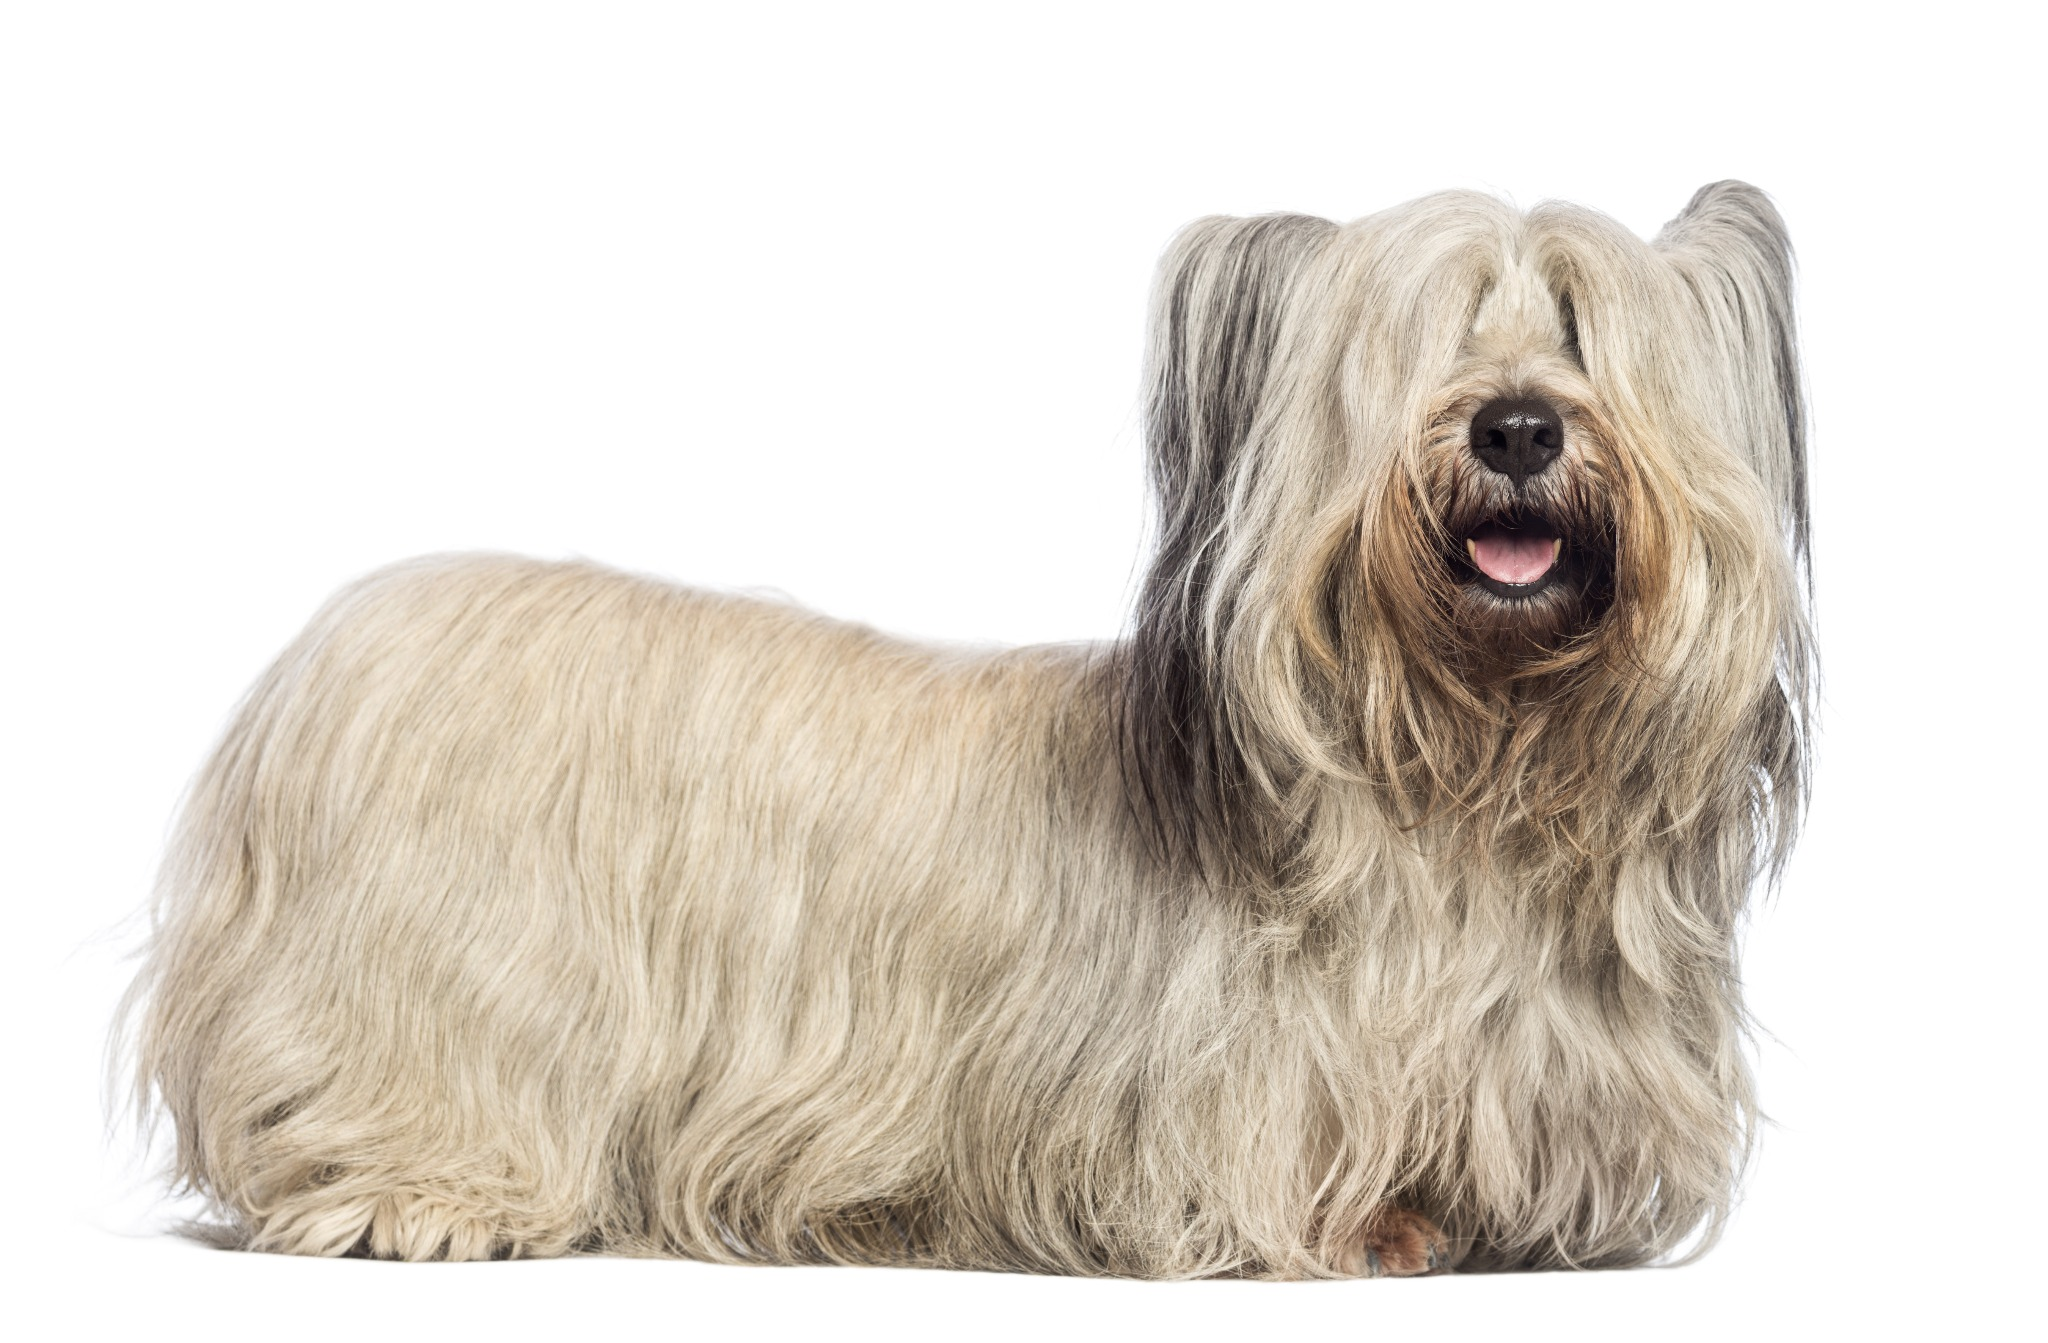 A portrait of a Skye Terrier. They are a Scottish dog breed.